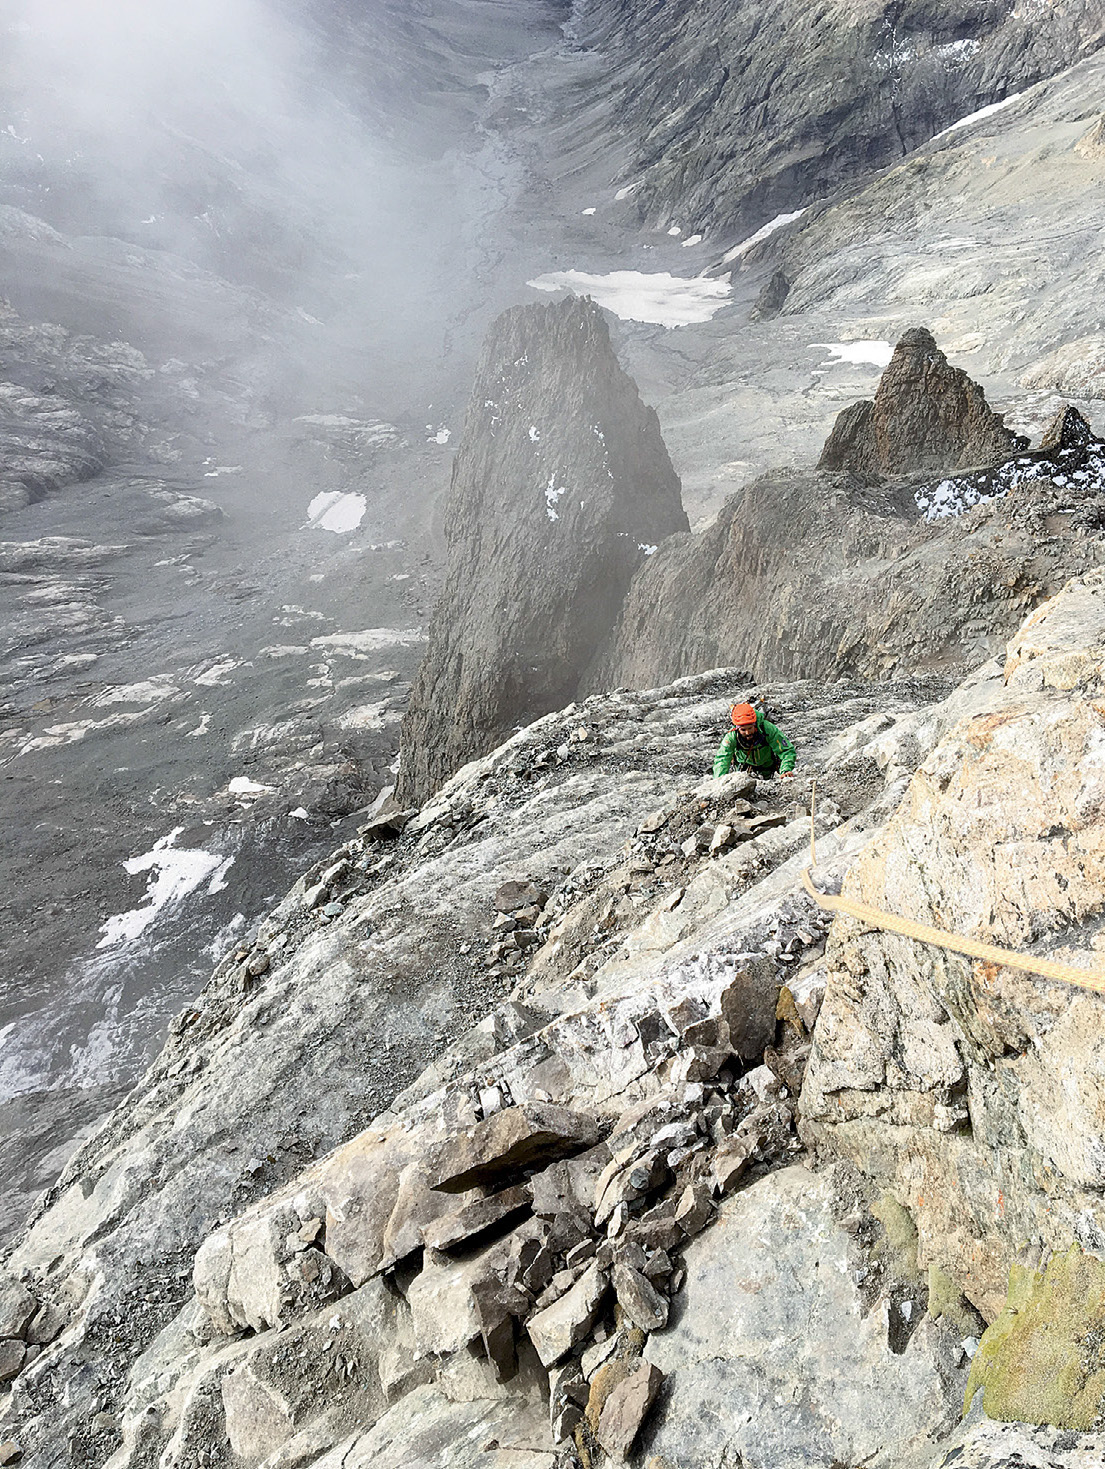 We've gone from a paradise of rock to hell, two guides from Alpe d'Huez recounted after climbing the Voie Normale in October 2018. They were the only team to have climbed the route in that year after the rockfall event of August 7. [Photo] Olivier Laborie